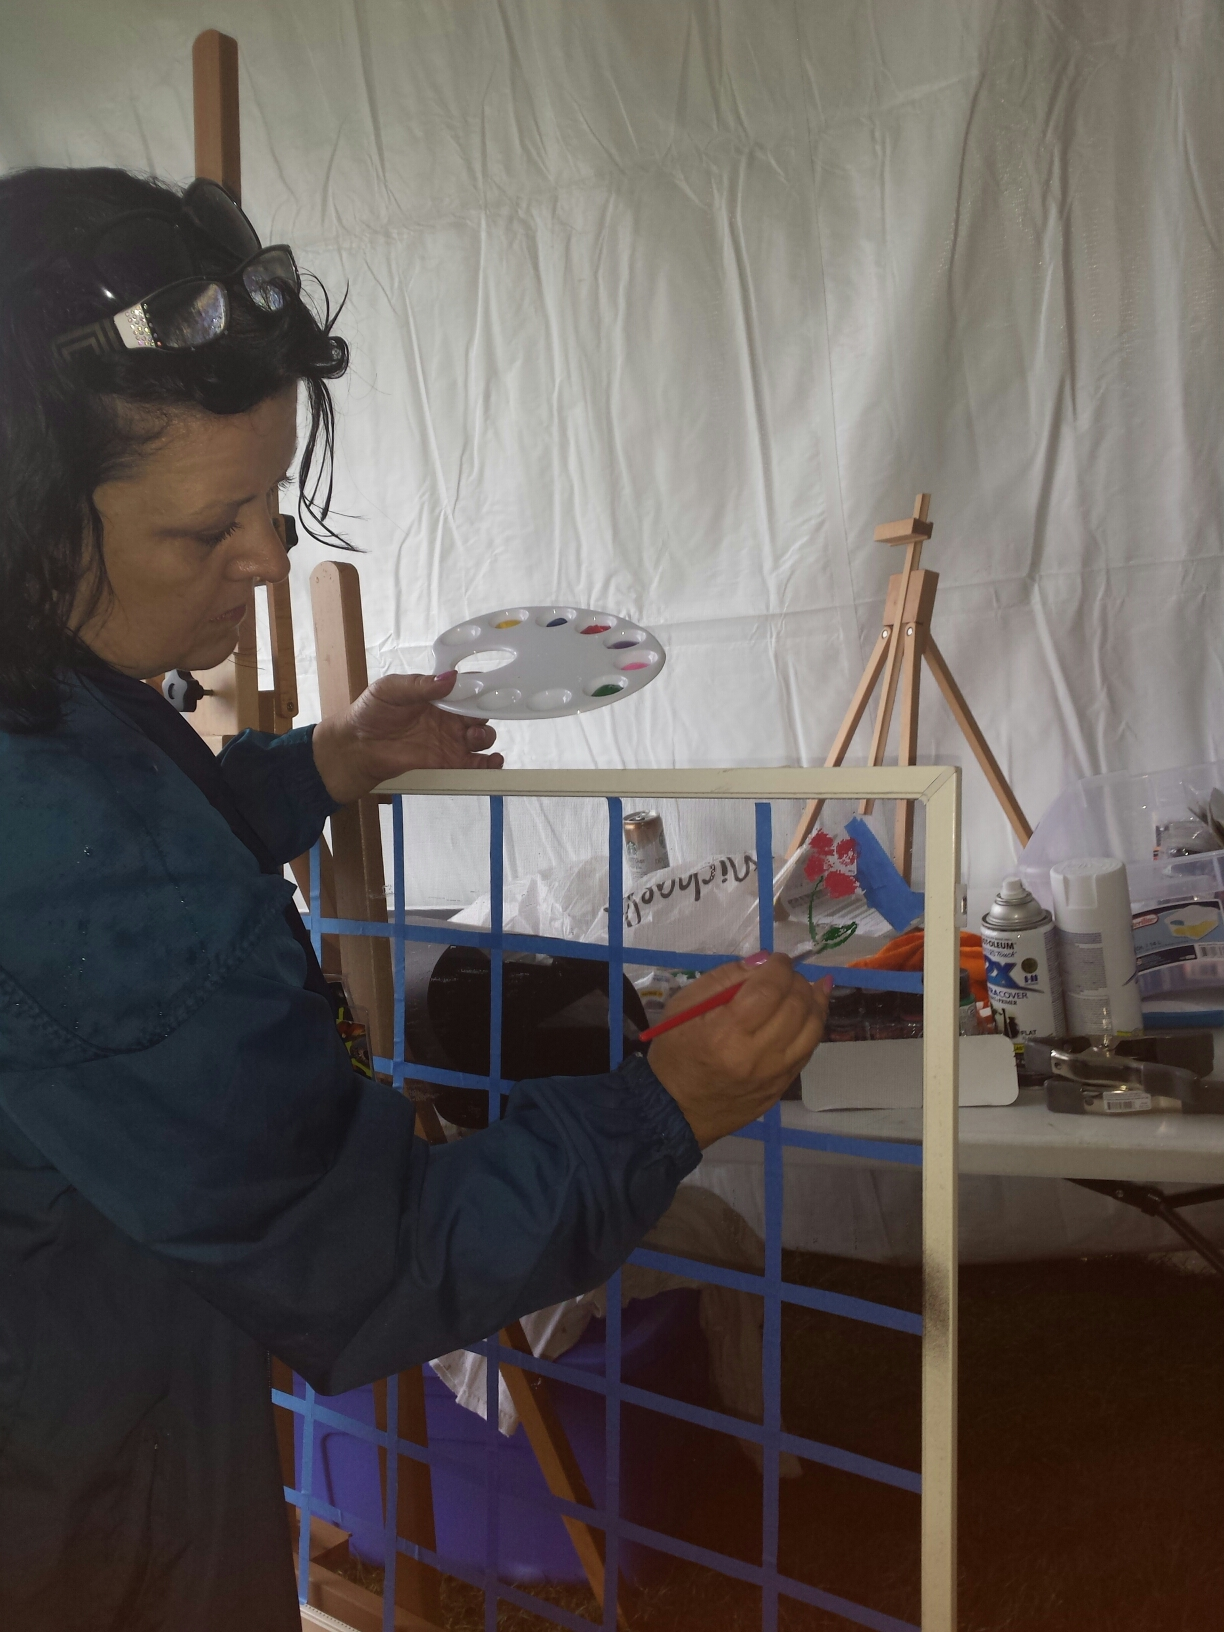 Spring, TX - Sherri is painting a flower on an Andersen window screen for children at The Woodlands Art Festival.